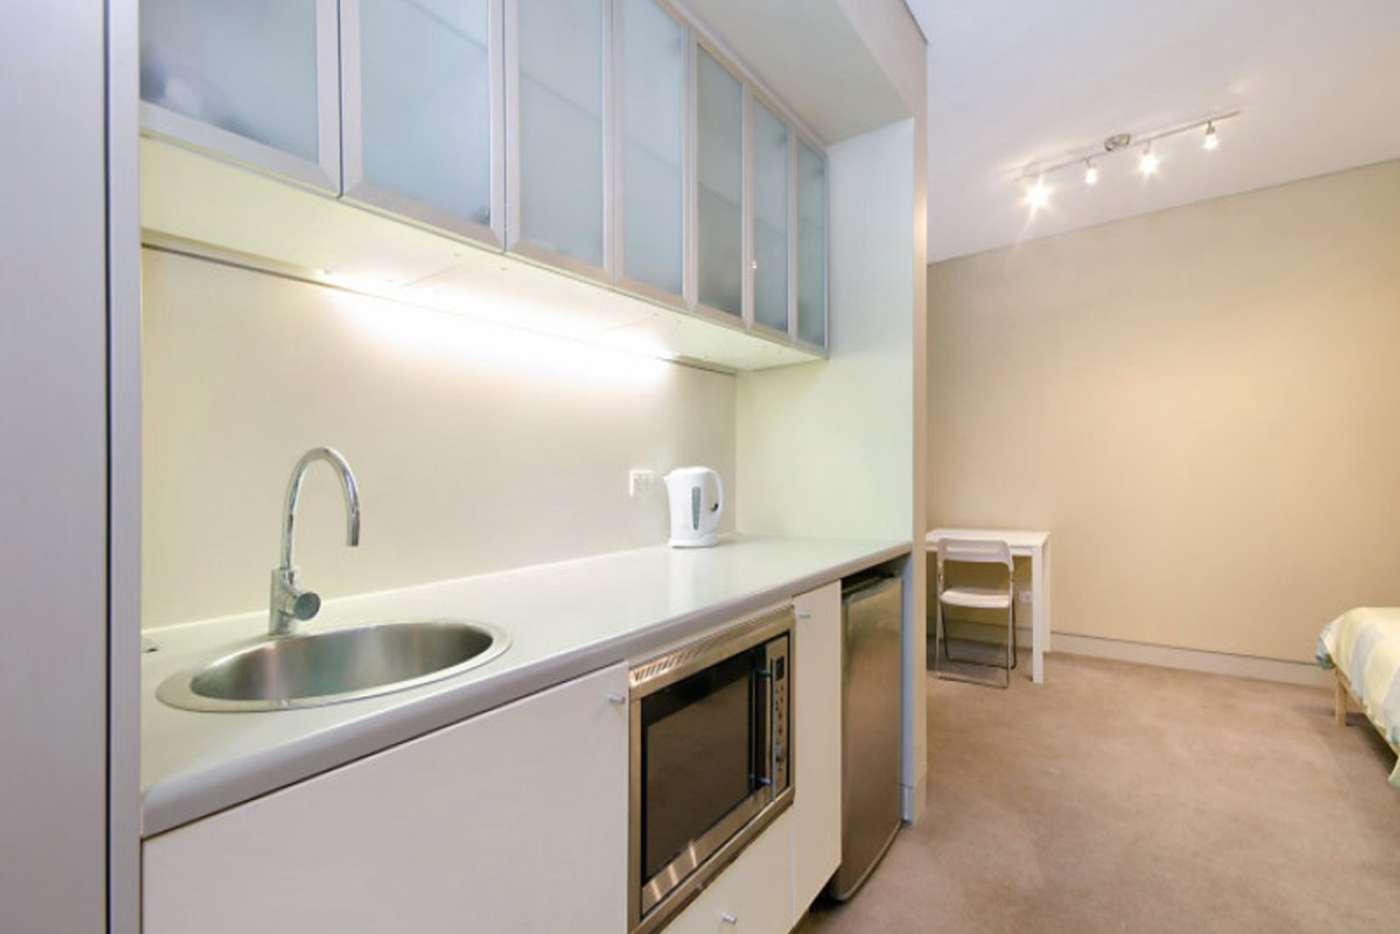 Main view of Homely apartment listing, 314/11 Chandos Street, St Leonards NSW 2065